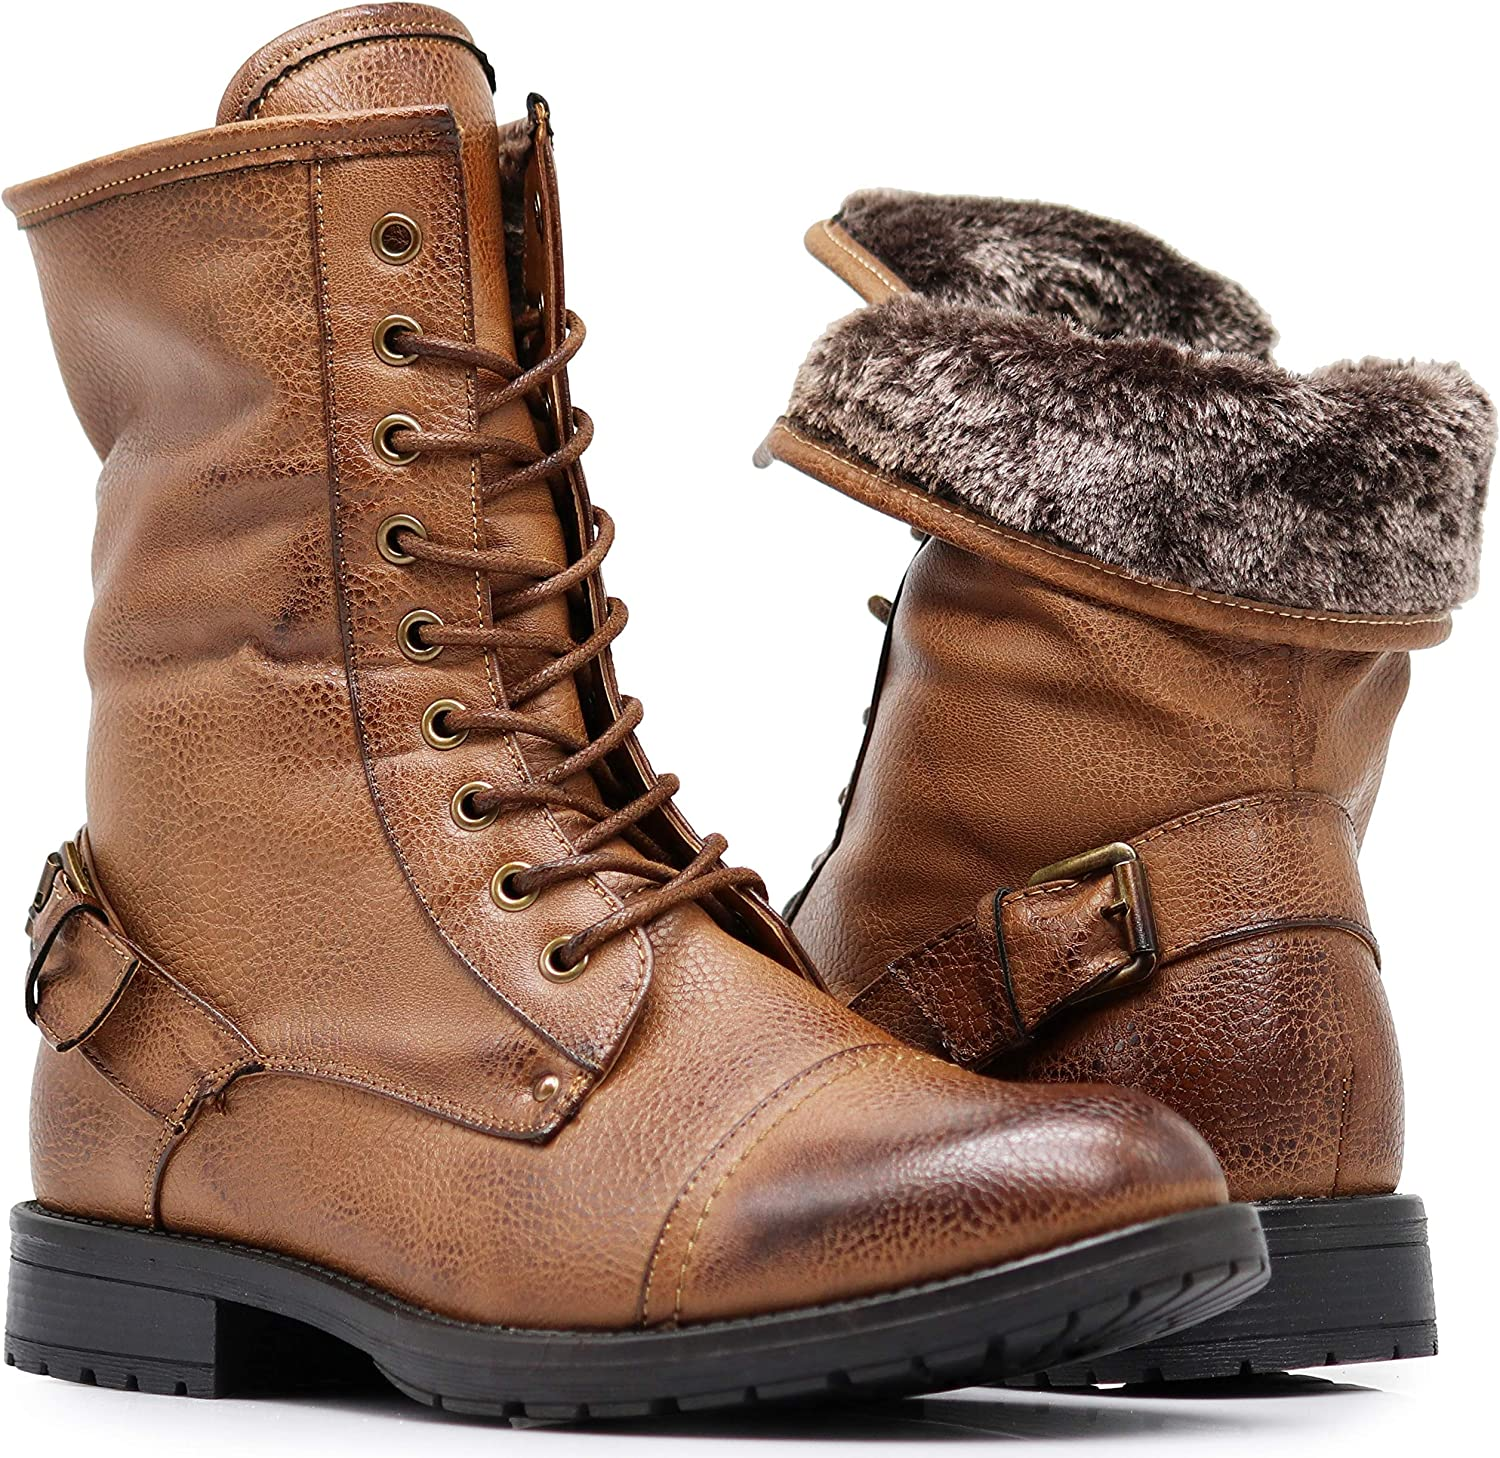 SH05 Mens Military Combat Mid Calf free Roll Down Max 79% OFF High Top Lace Ankle